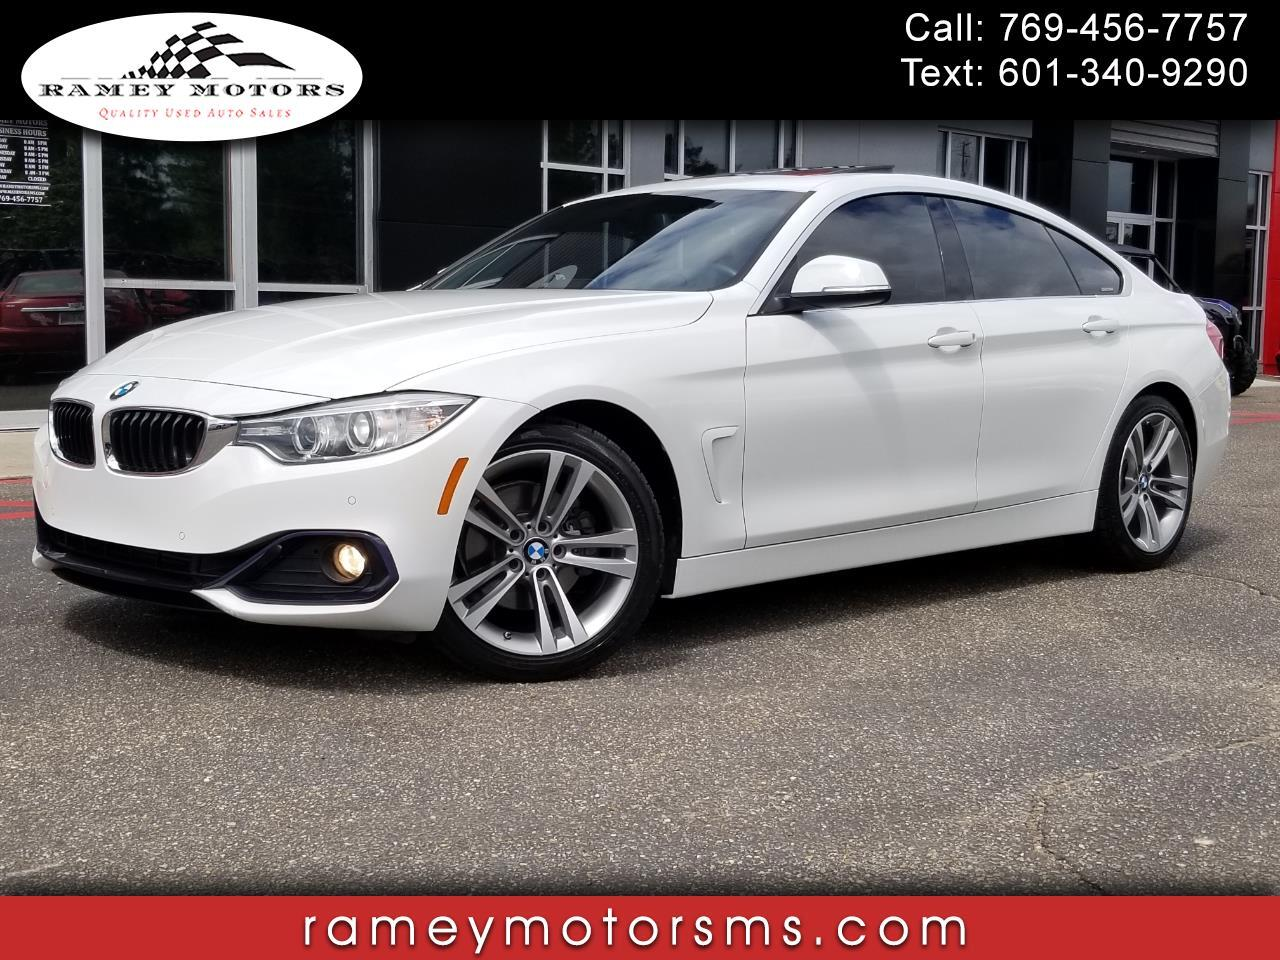 2016 BMW 4 Series 428i GRAND COUPE